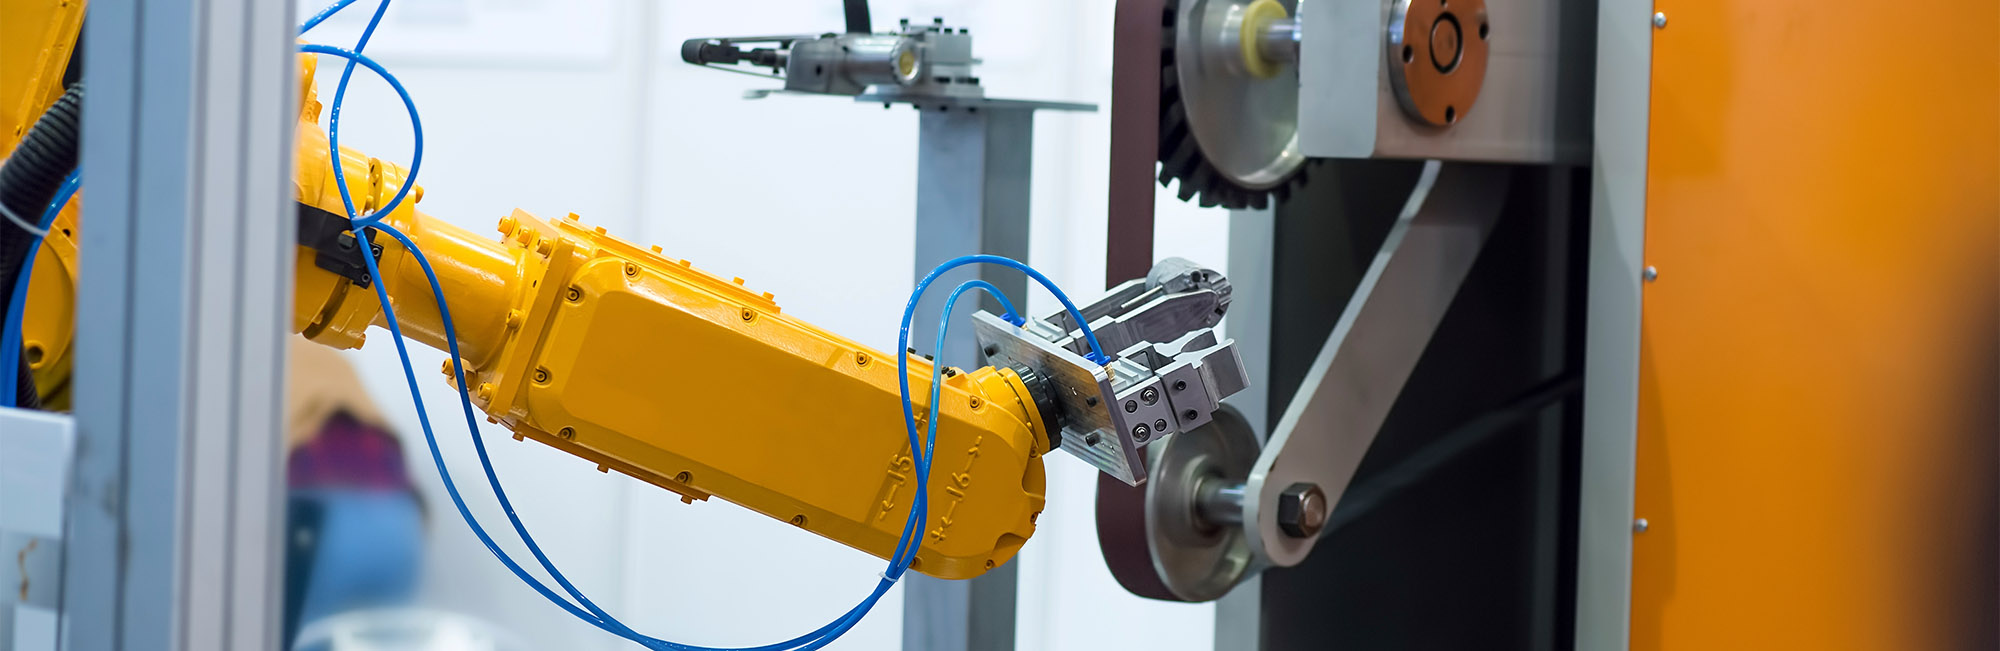 Hartfiel Automation offers Engineering Services